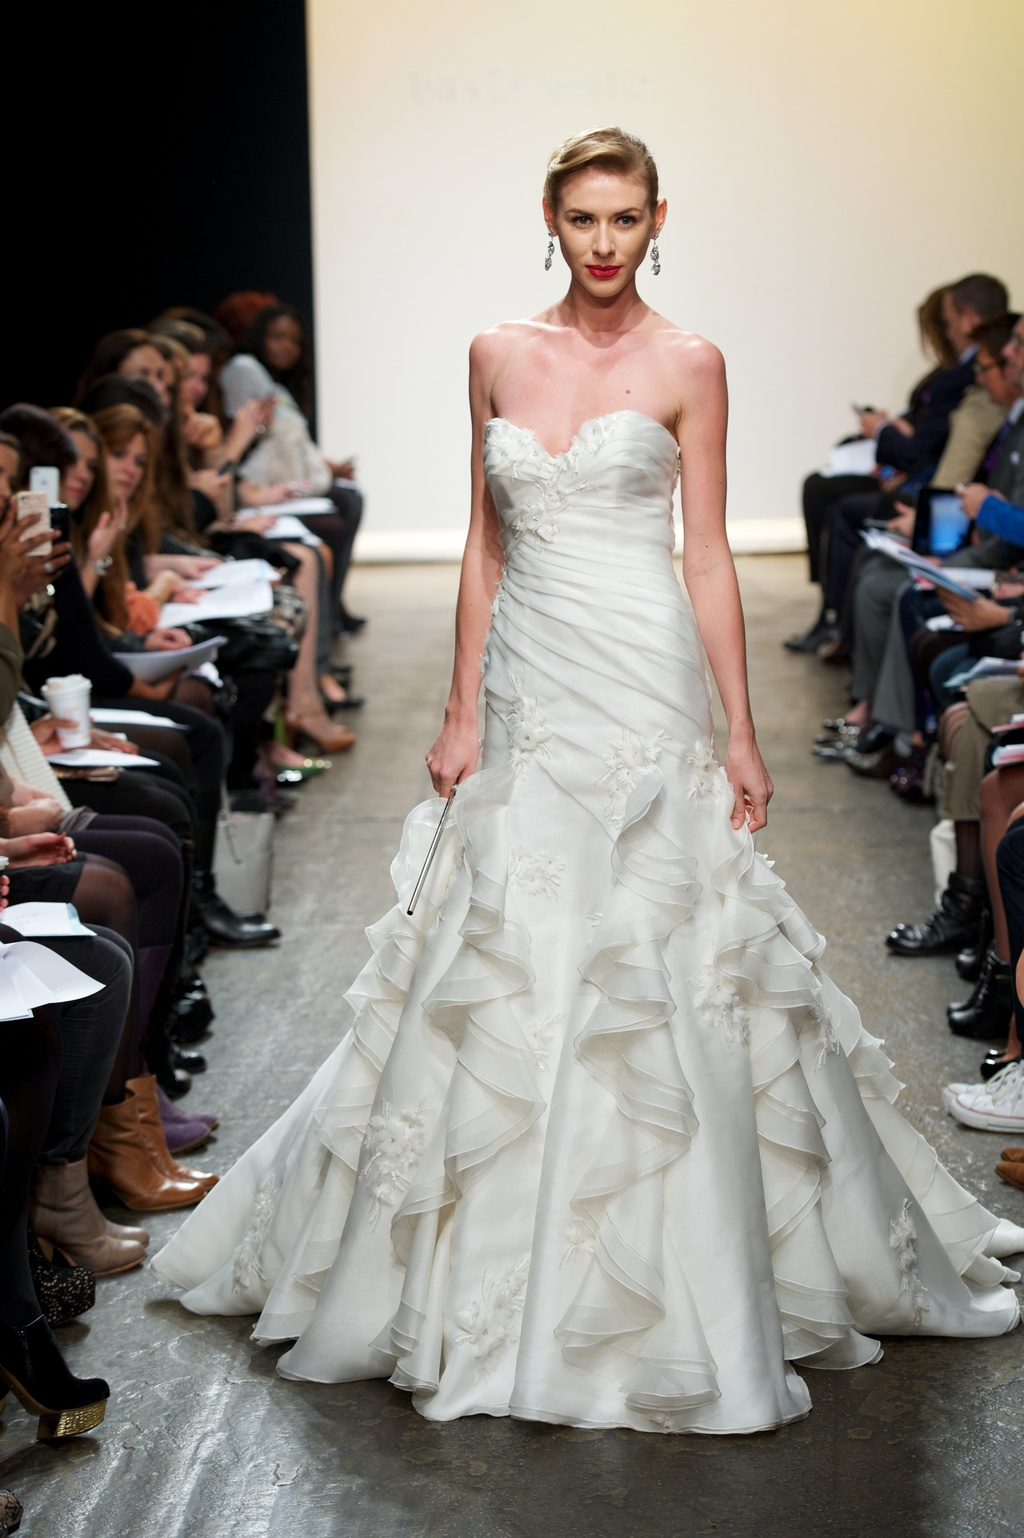 2013 Wedding Dress by Ines di Santo Murano